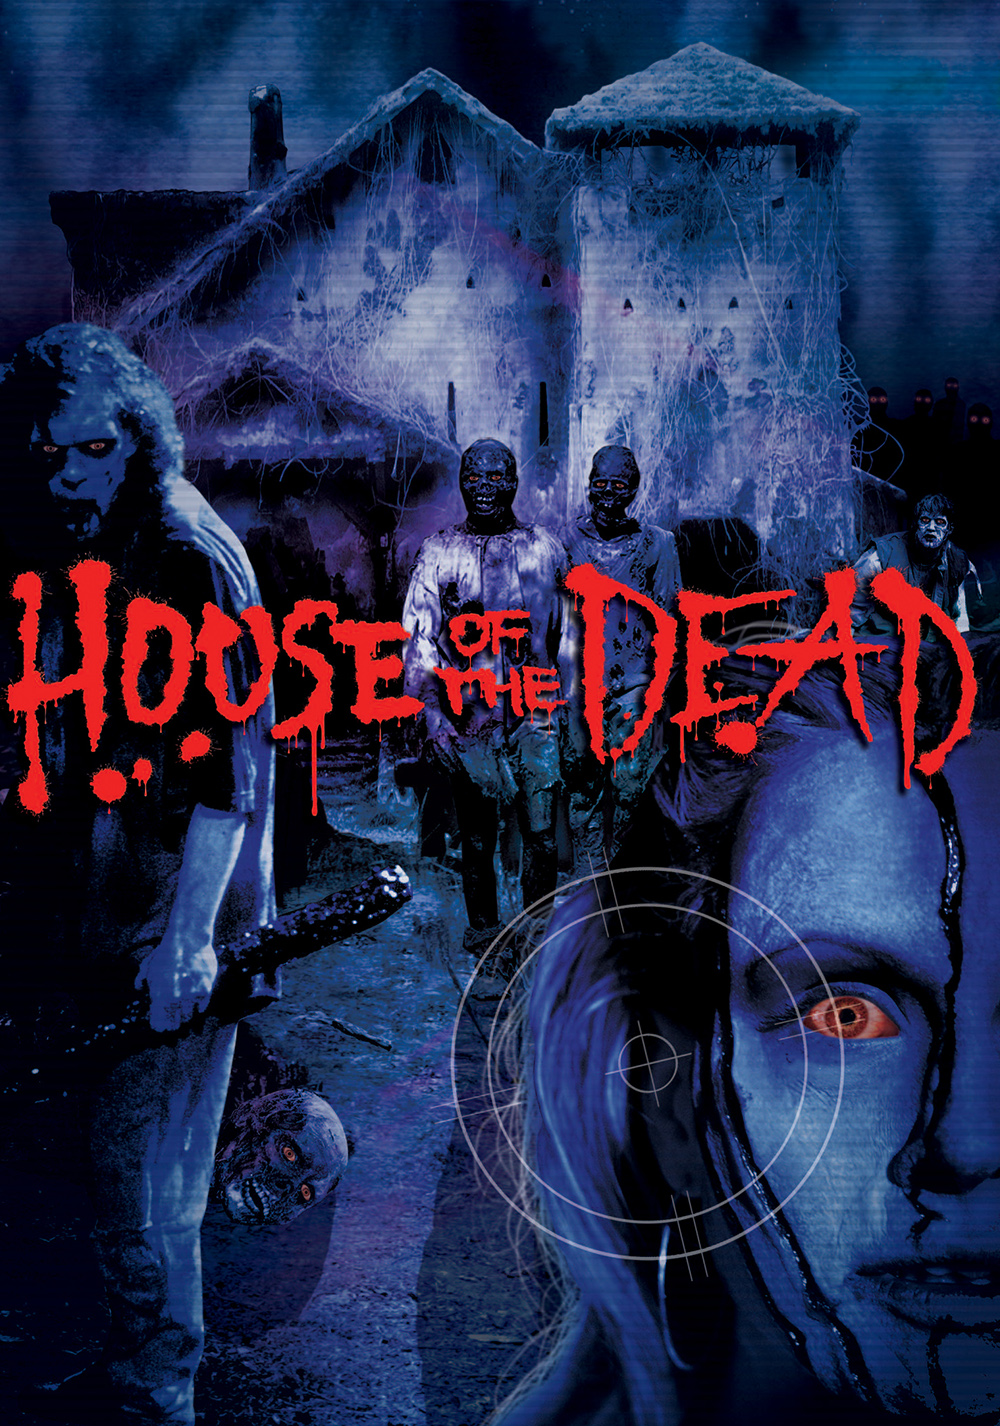 house-of-the-dead-5260781f59ee4.jpg